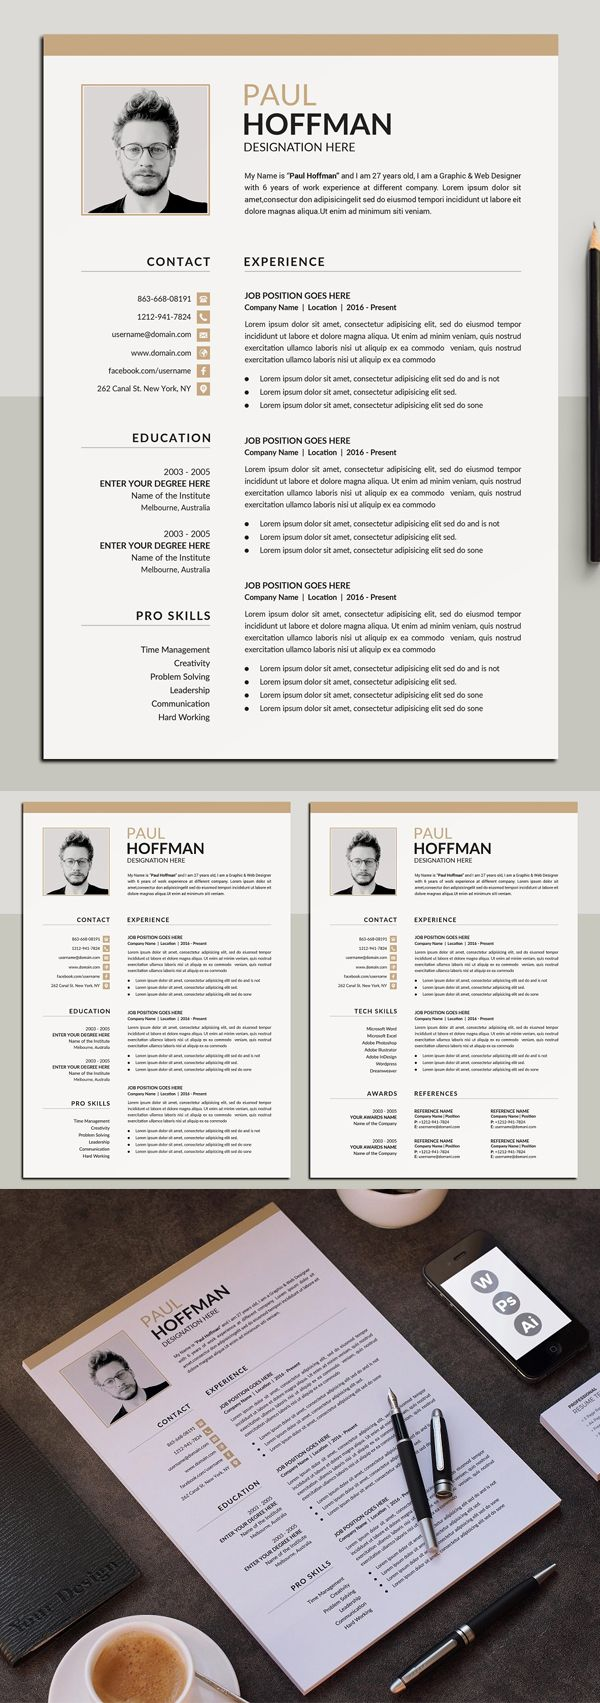 Perfect Resume Template / CV in 2020 Cv template